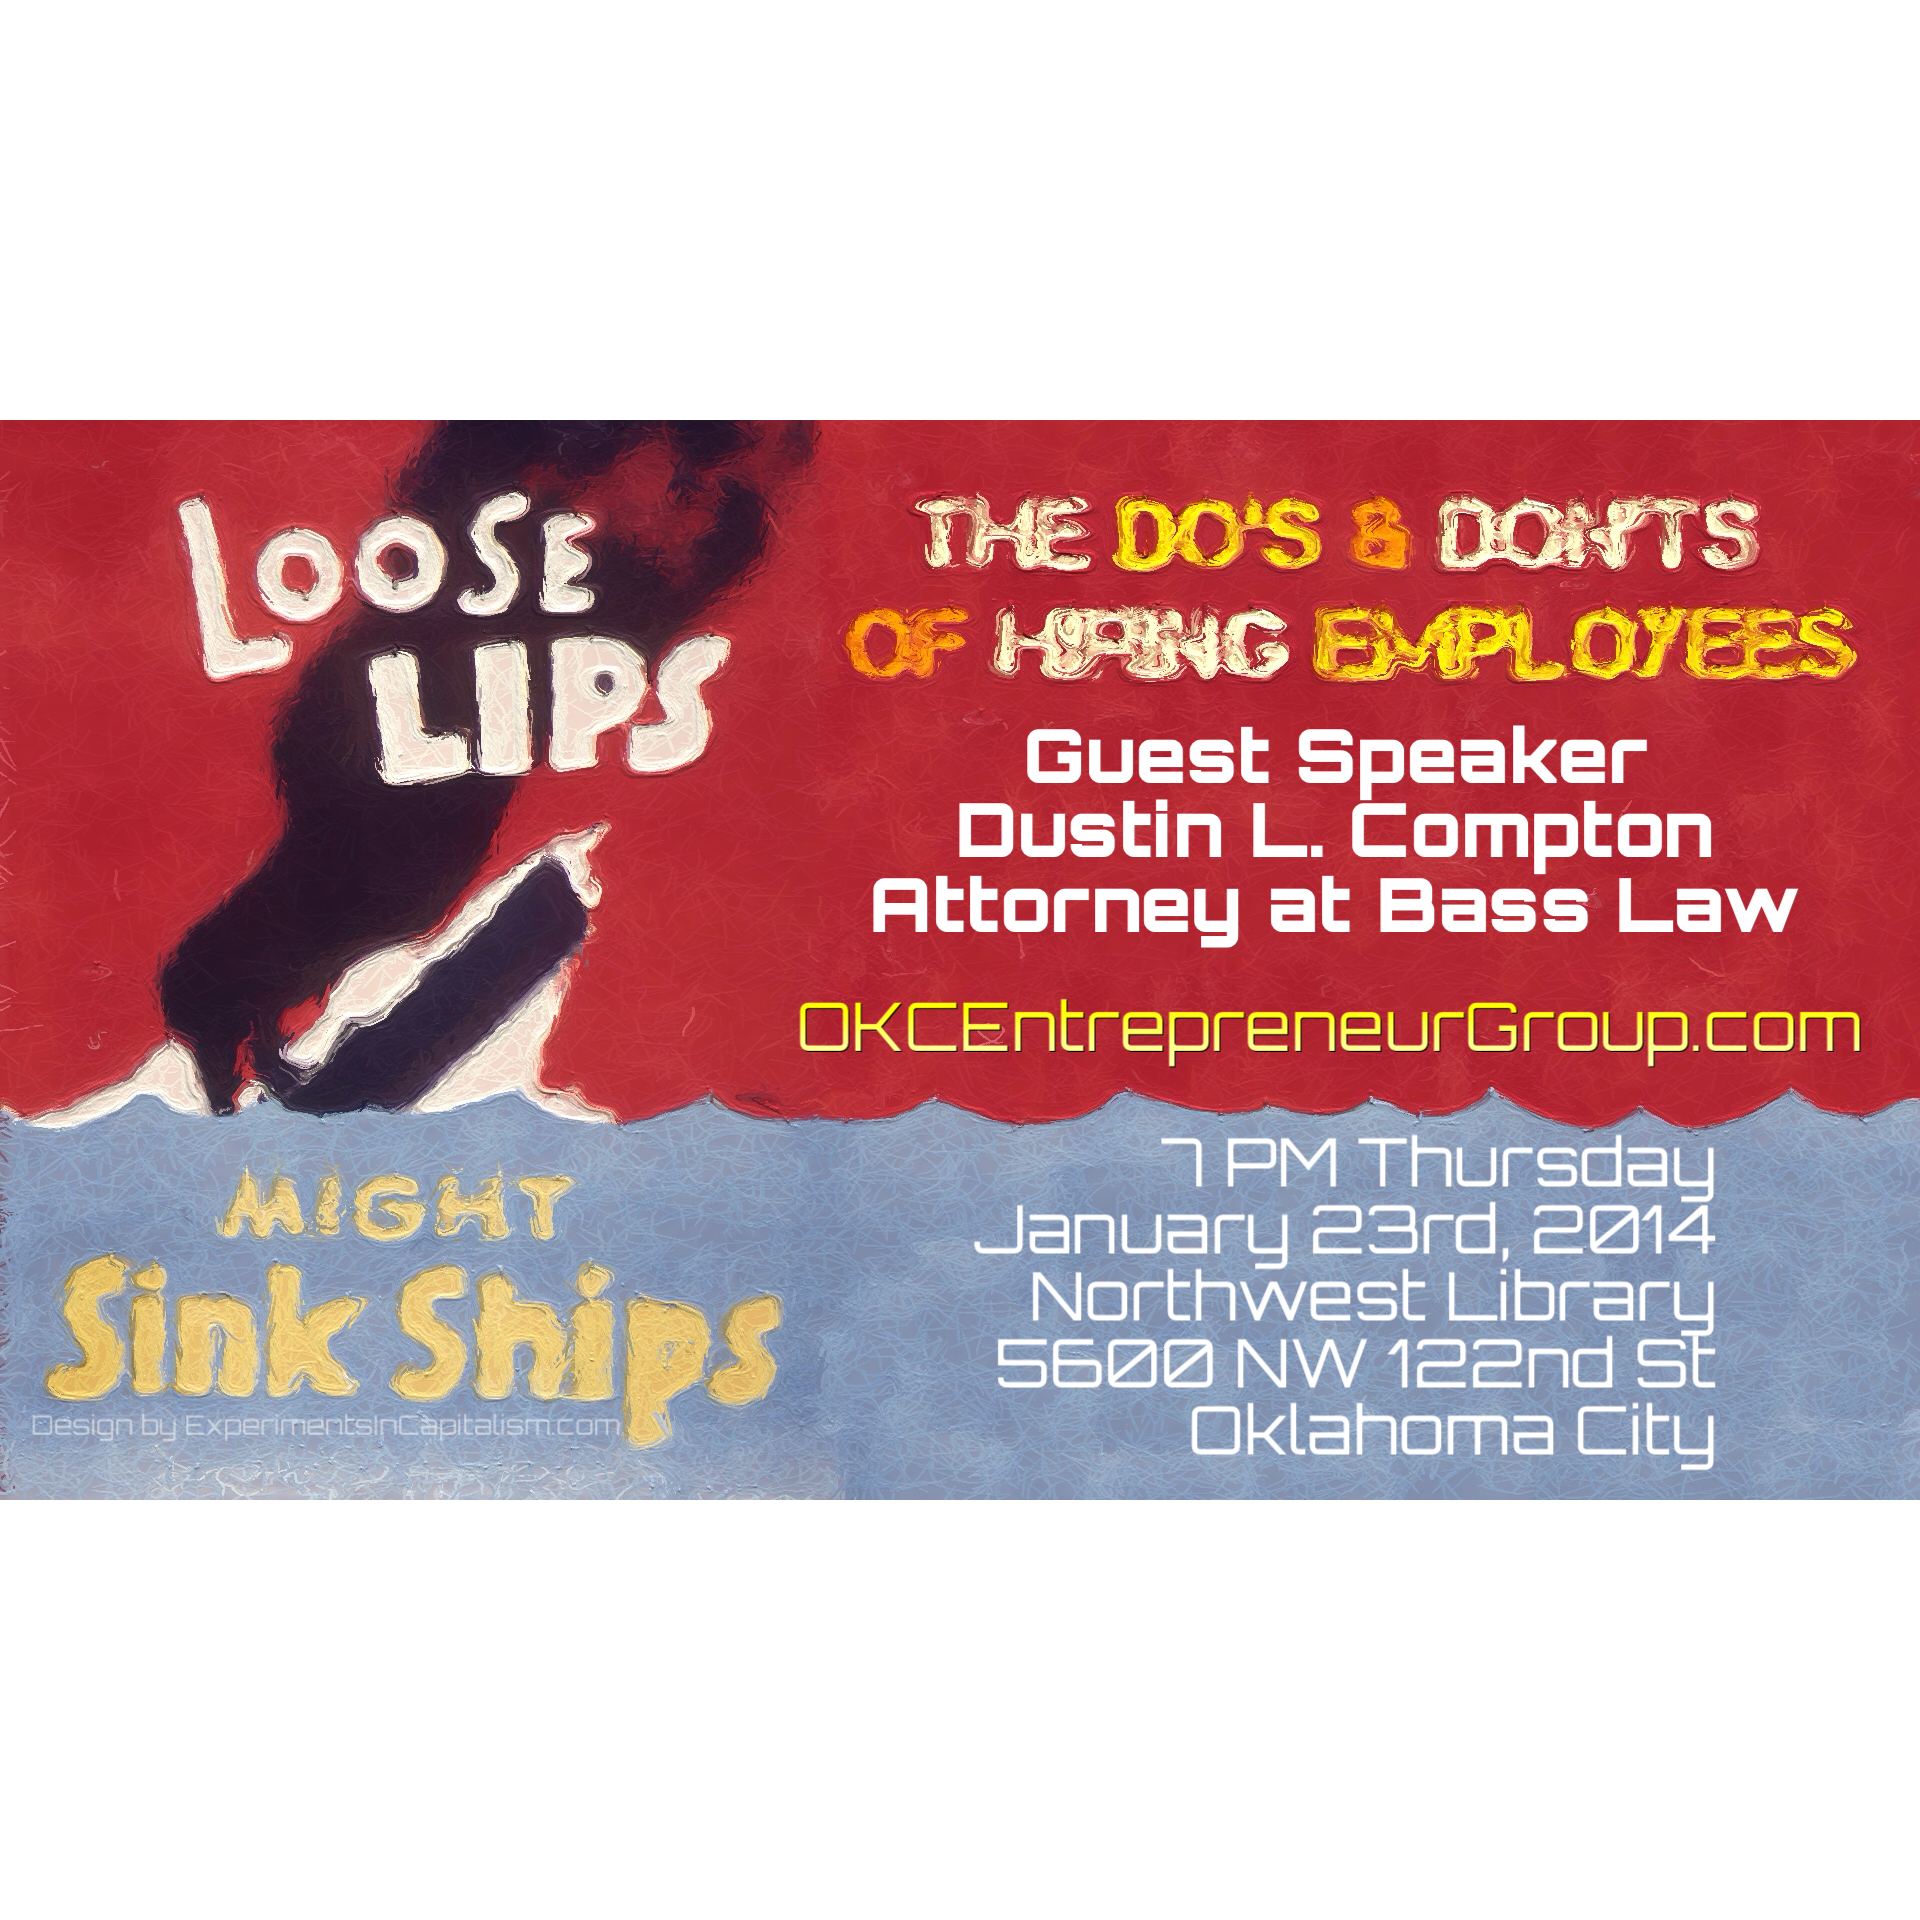 Dos & Donts of Hiring Employees - Dustin Compton Bass Law at OKCEntrepreneurGroup.com box.jpg